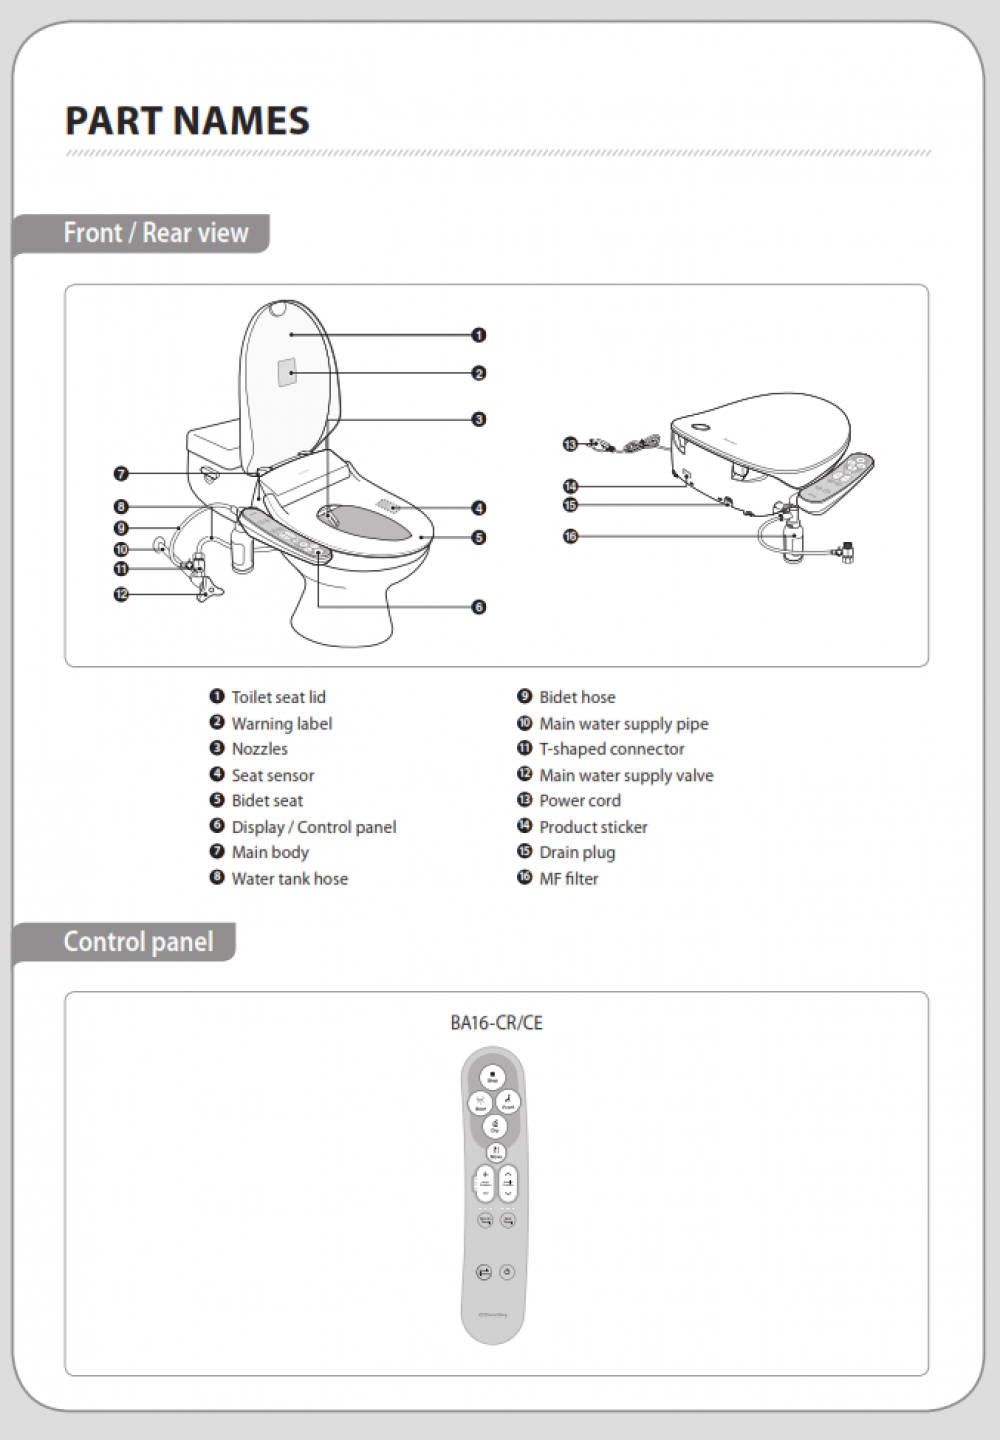 coway bas16-c parts review tooaleta bidet